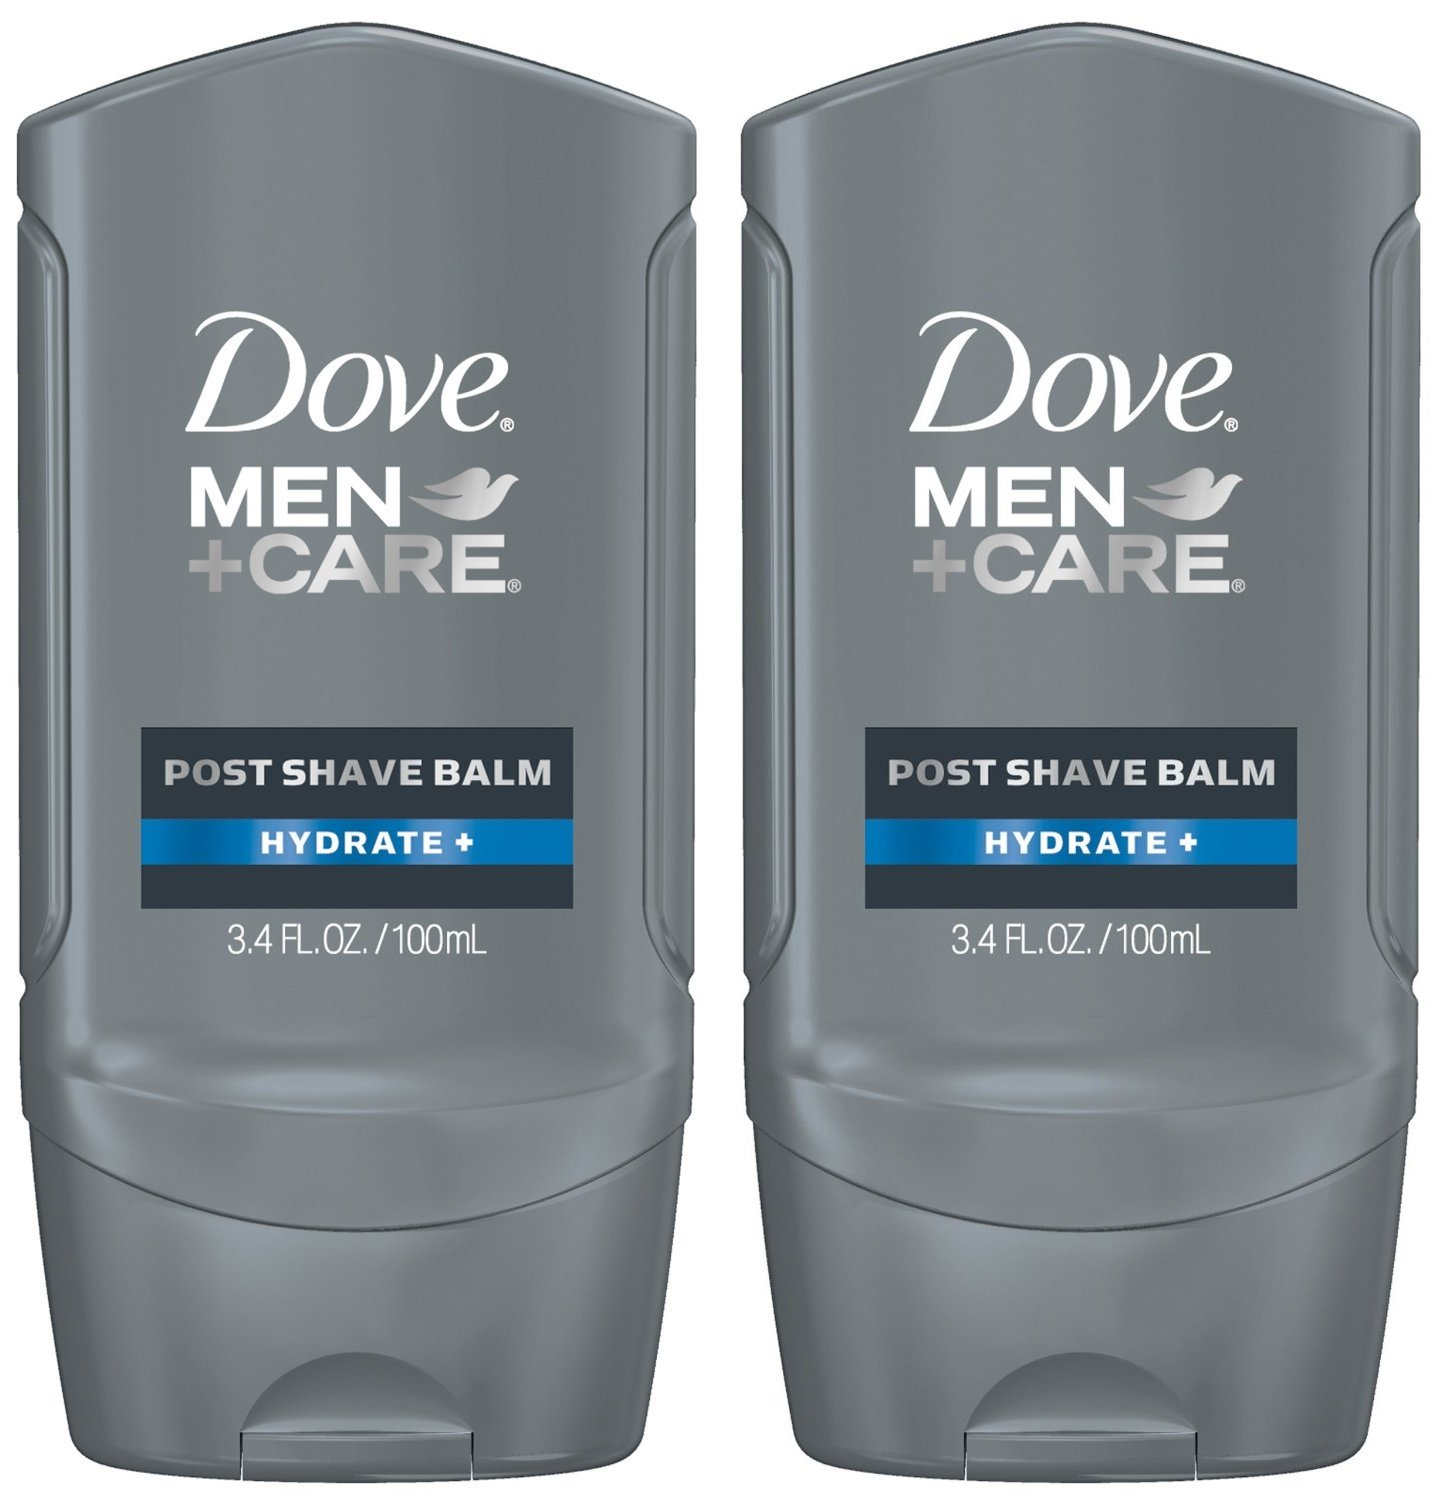 Dove Men+Care Post Shave Balm, Hydrate+, 3.4 Fl Oz, Pack of 2